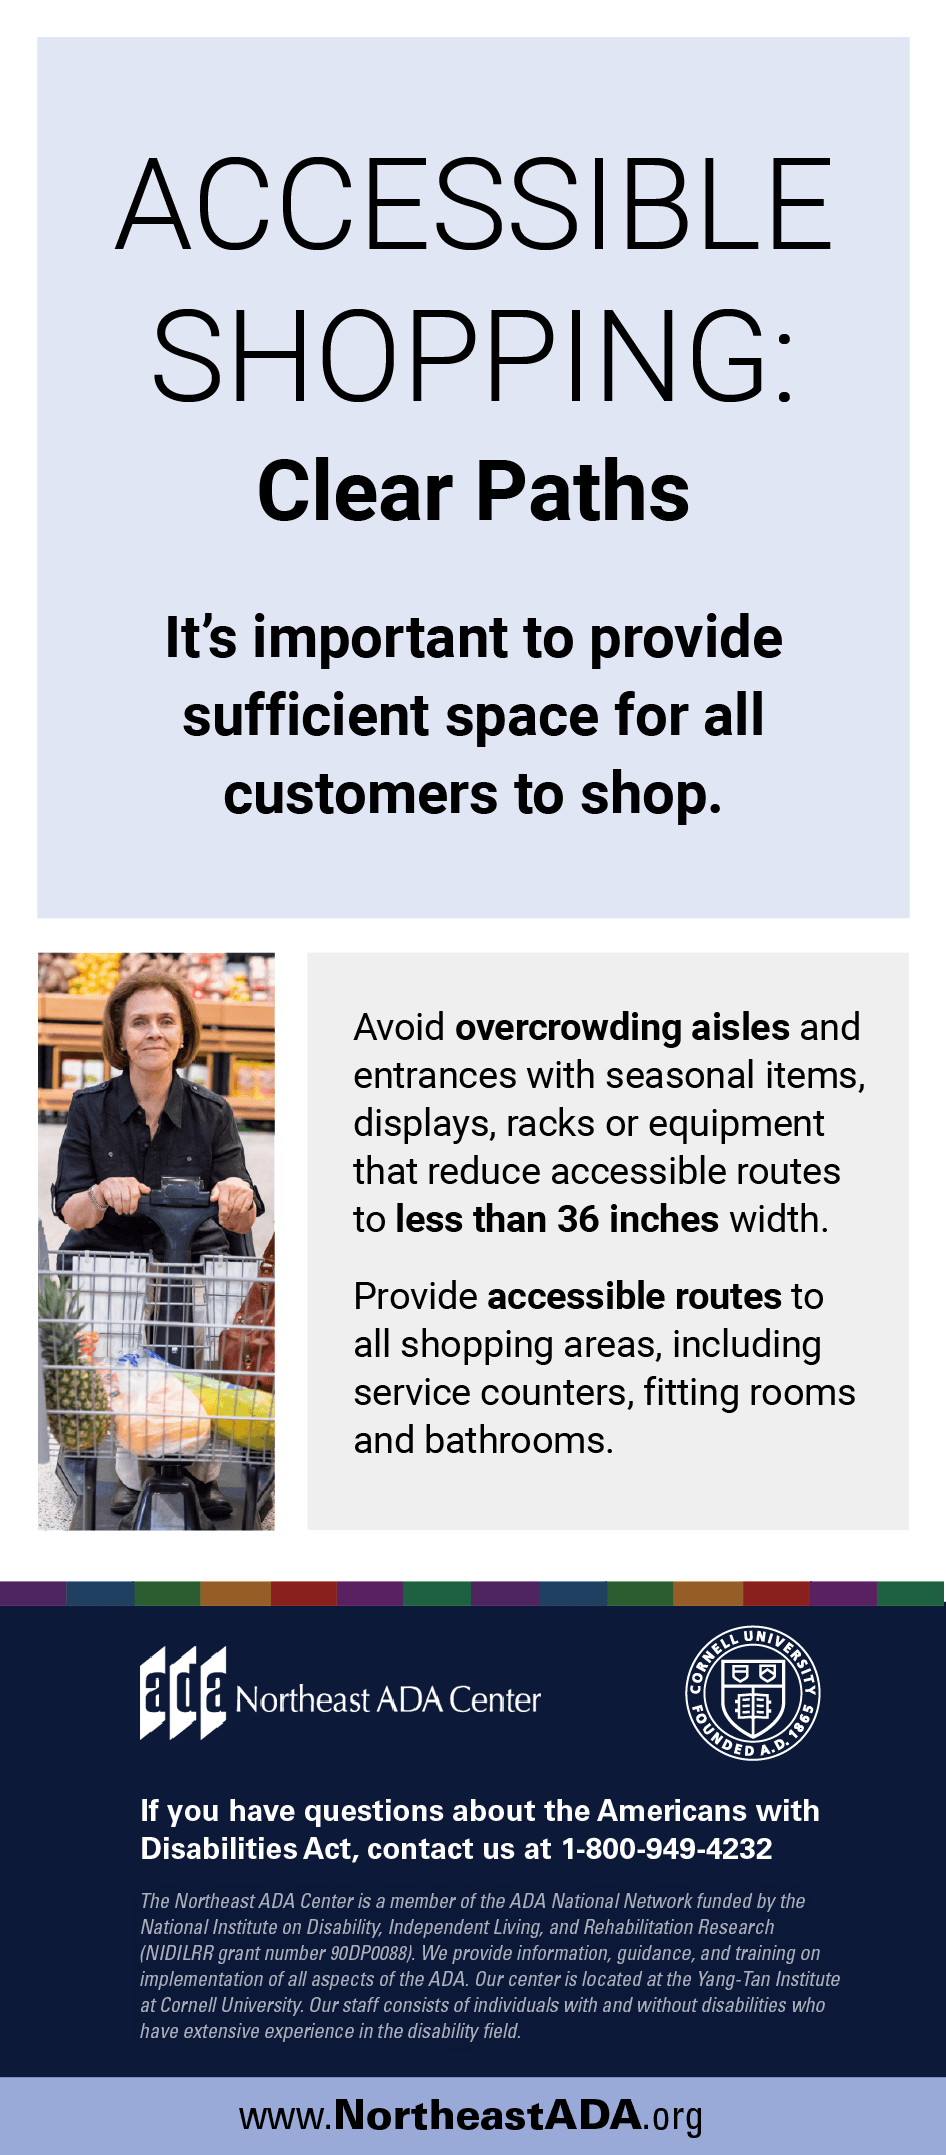 Infographic titled 'Accessible Shopping: Clear Paths' featuring a photo of a woman using a motorized shopping cart in a supermarket.  It's important to provide sufficient space for all customers to shop.  Avoid overcrowding aisles and entrances with seasonal items, displays, racks or equipment that reduce accessible routes to less than 36 inches width.  Provide accessible routes to all shopping areas, including service counters, fitting rooms and bathrooms.  If you have questions about the Americans with Disabilities Act, contact us at 1-800-949-4232